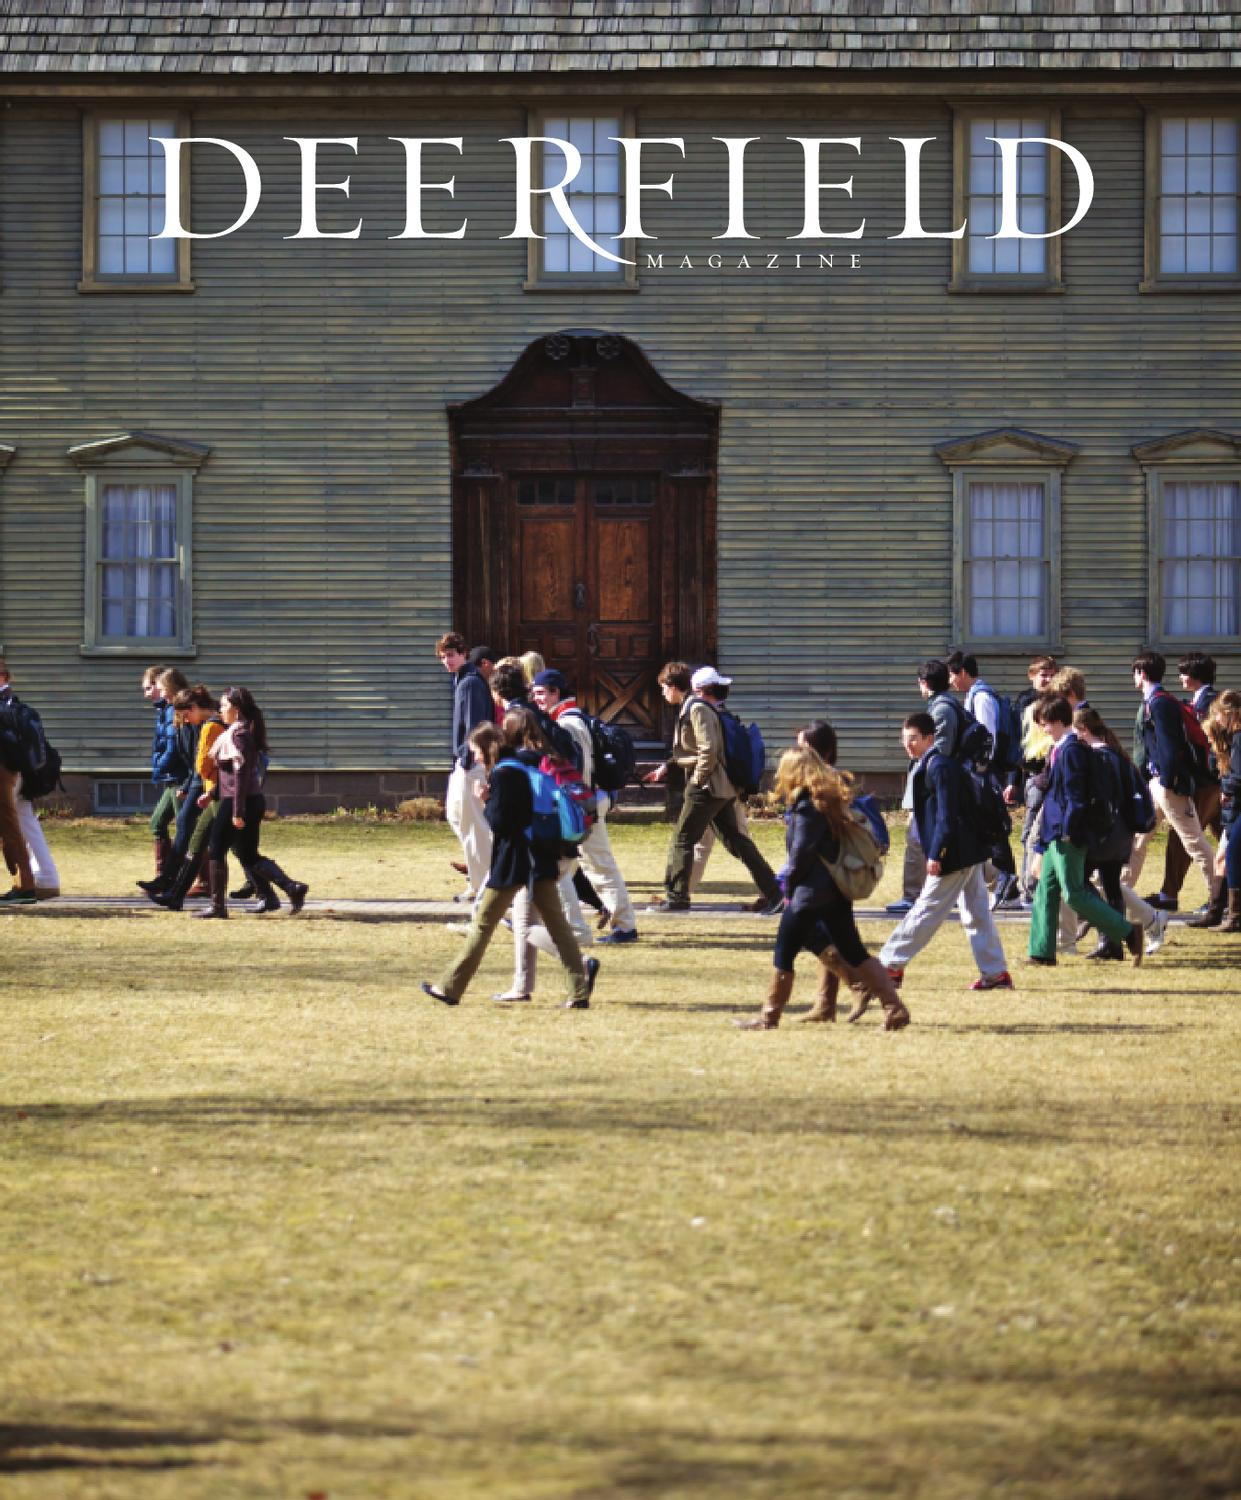 Fall 2012 Deerfield Magazine By Deerfield Academy Issuu